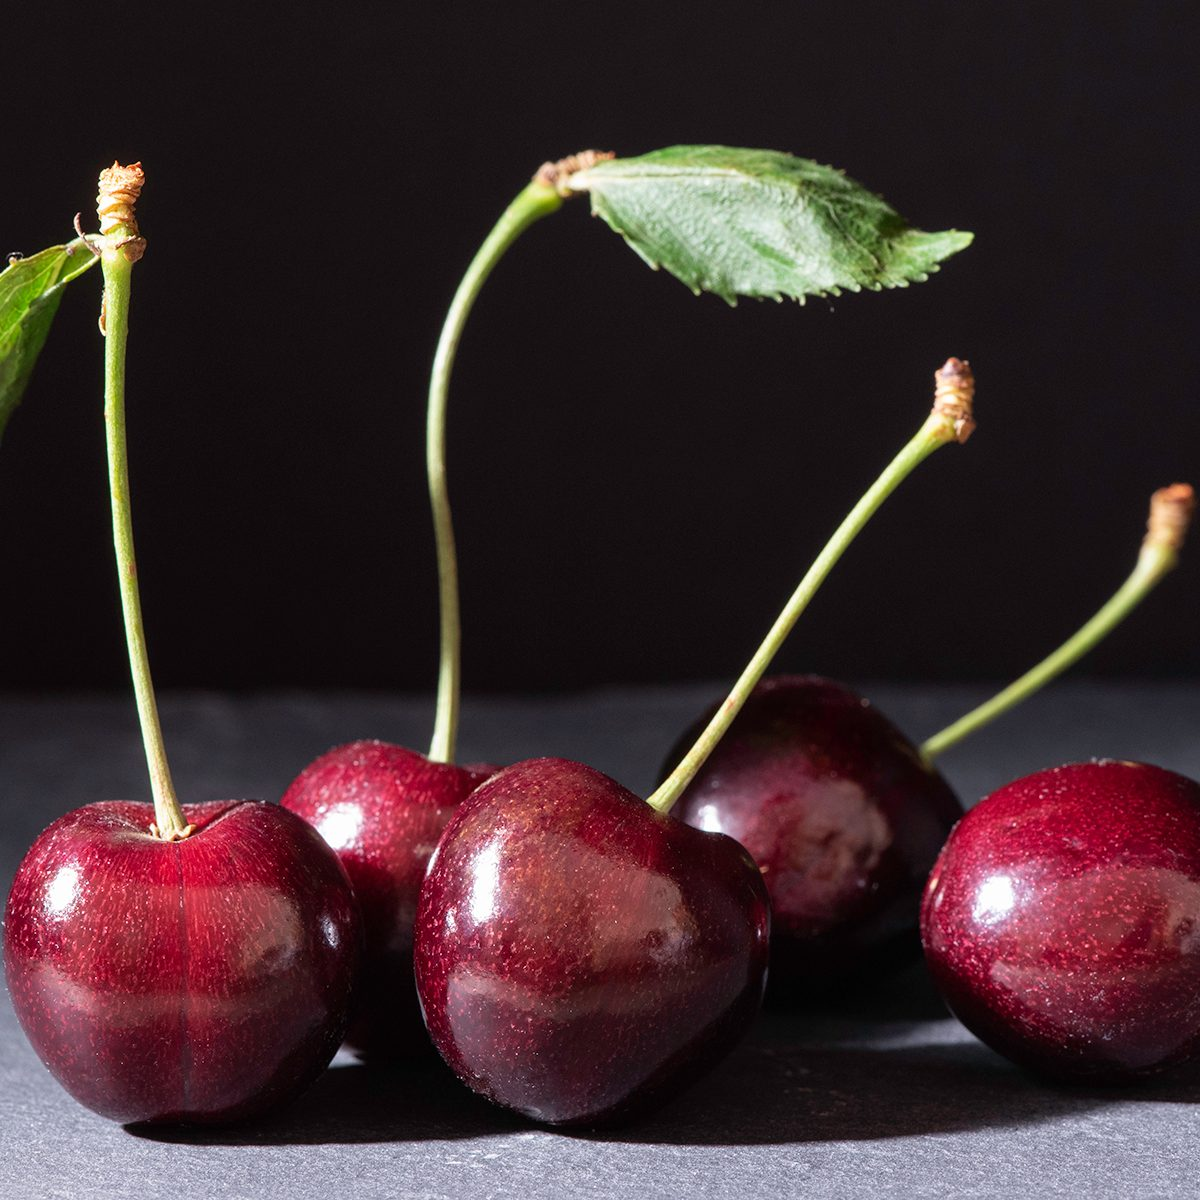 Cherries on slate, shot with limited side light